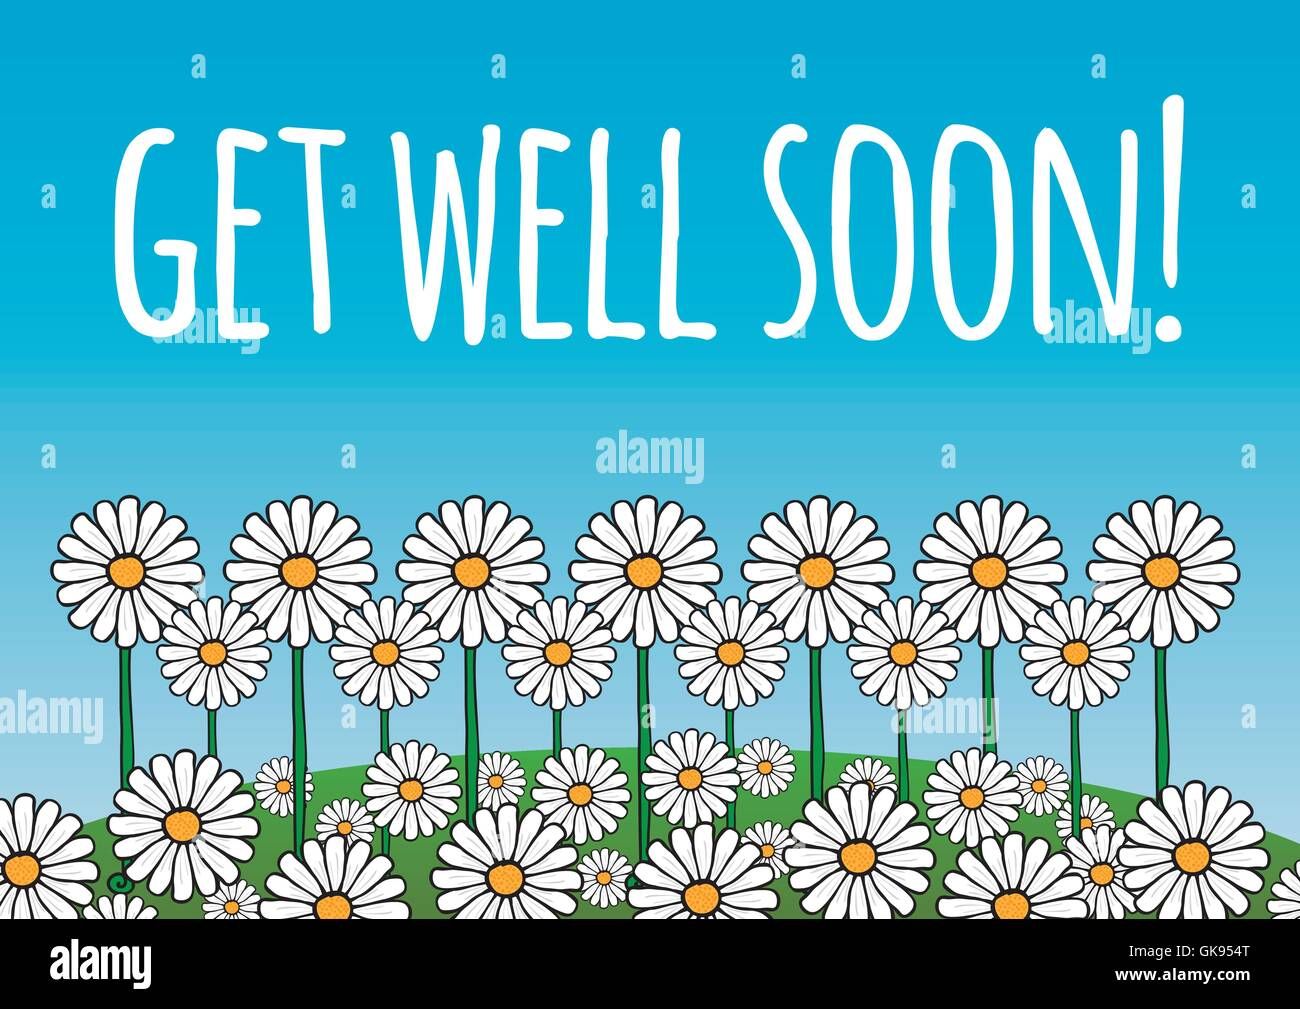 get well soon card poster contains daisy flowers on a green hill